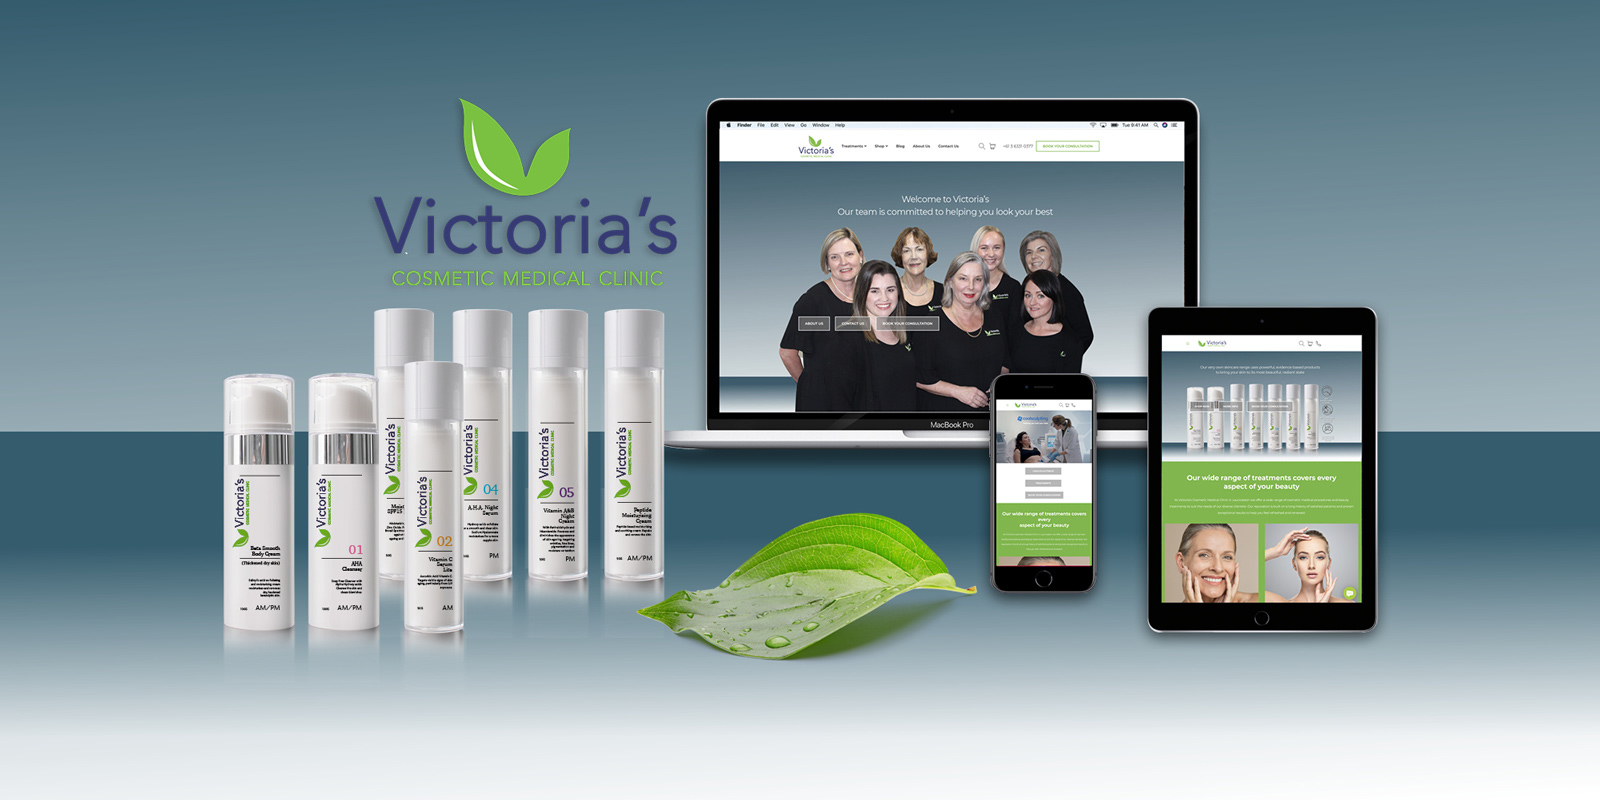 Victoria's Cosmetic Medical Clinic